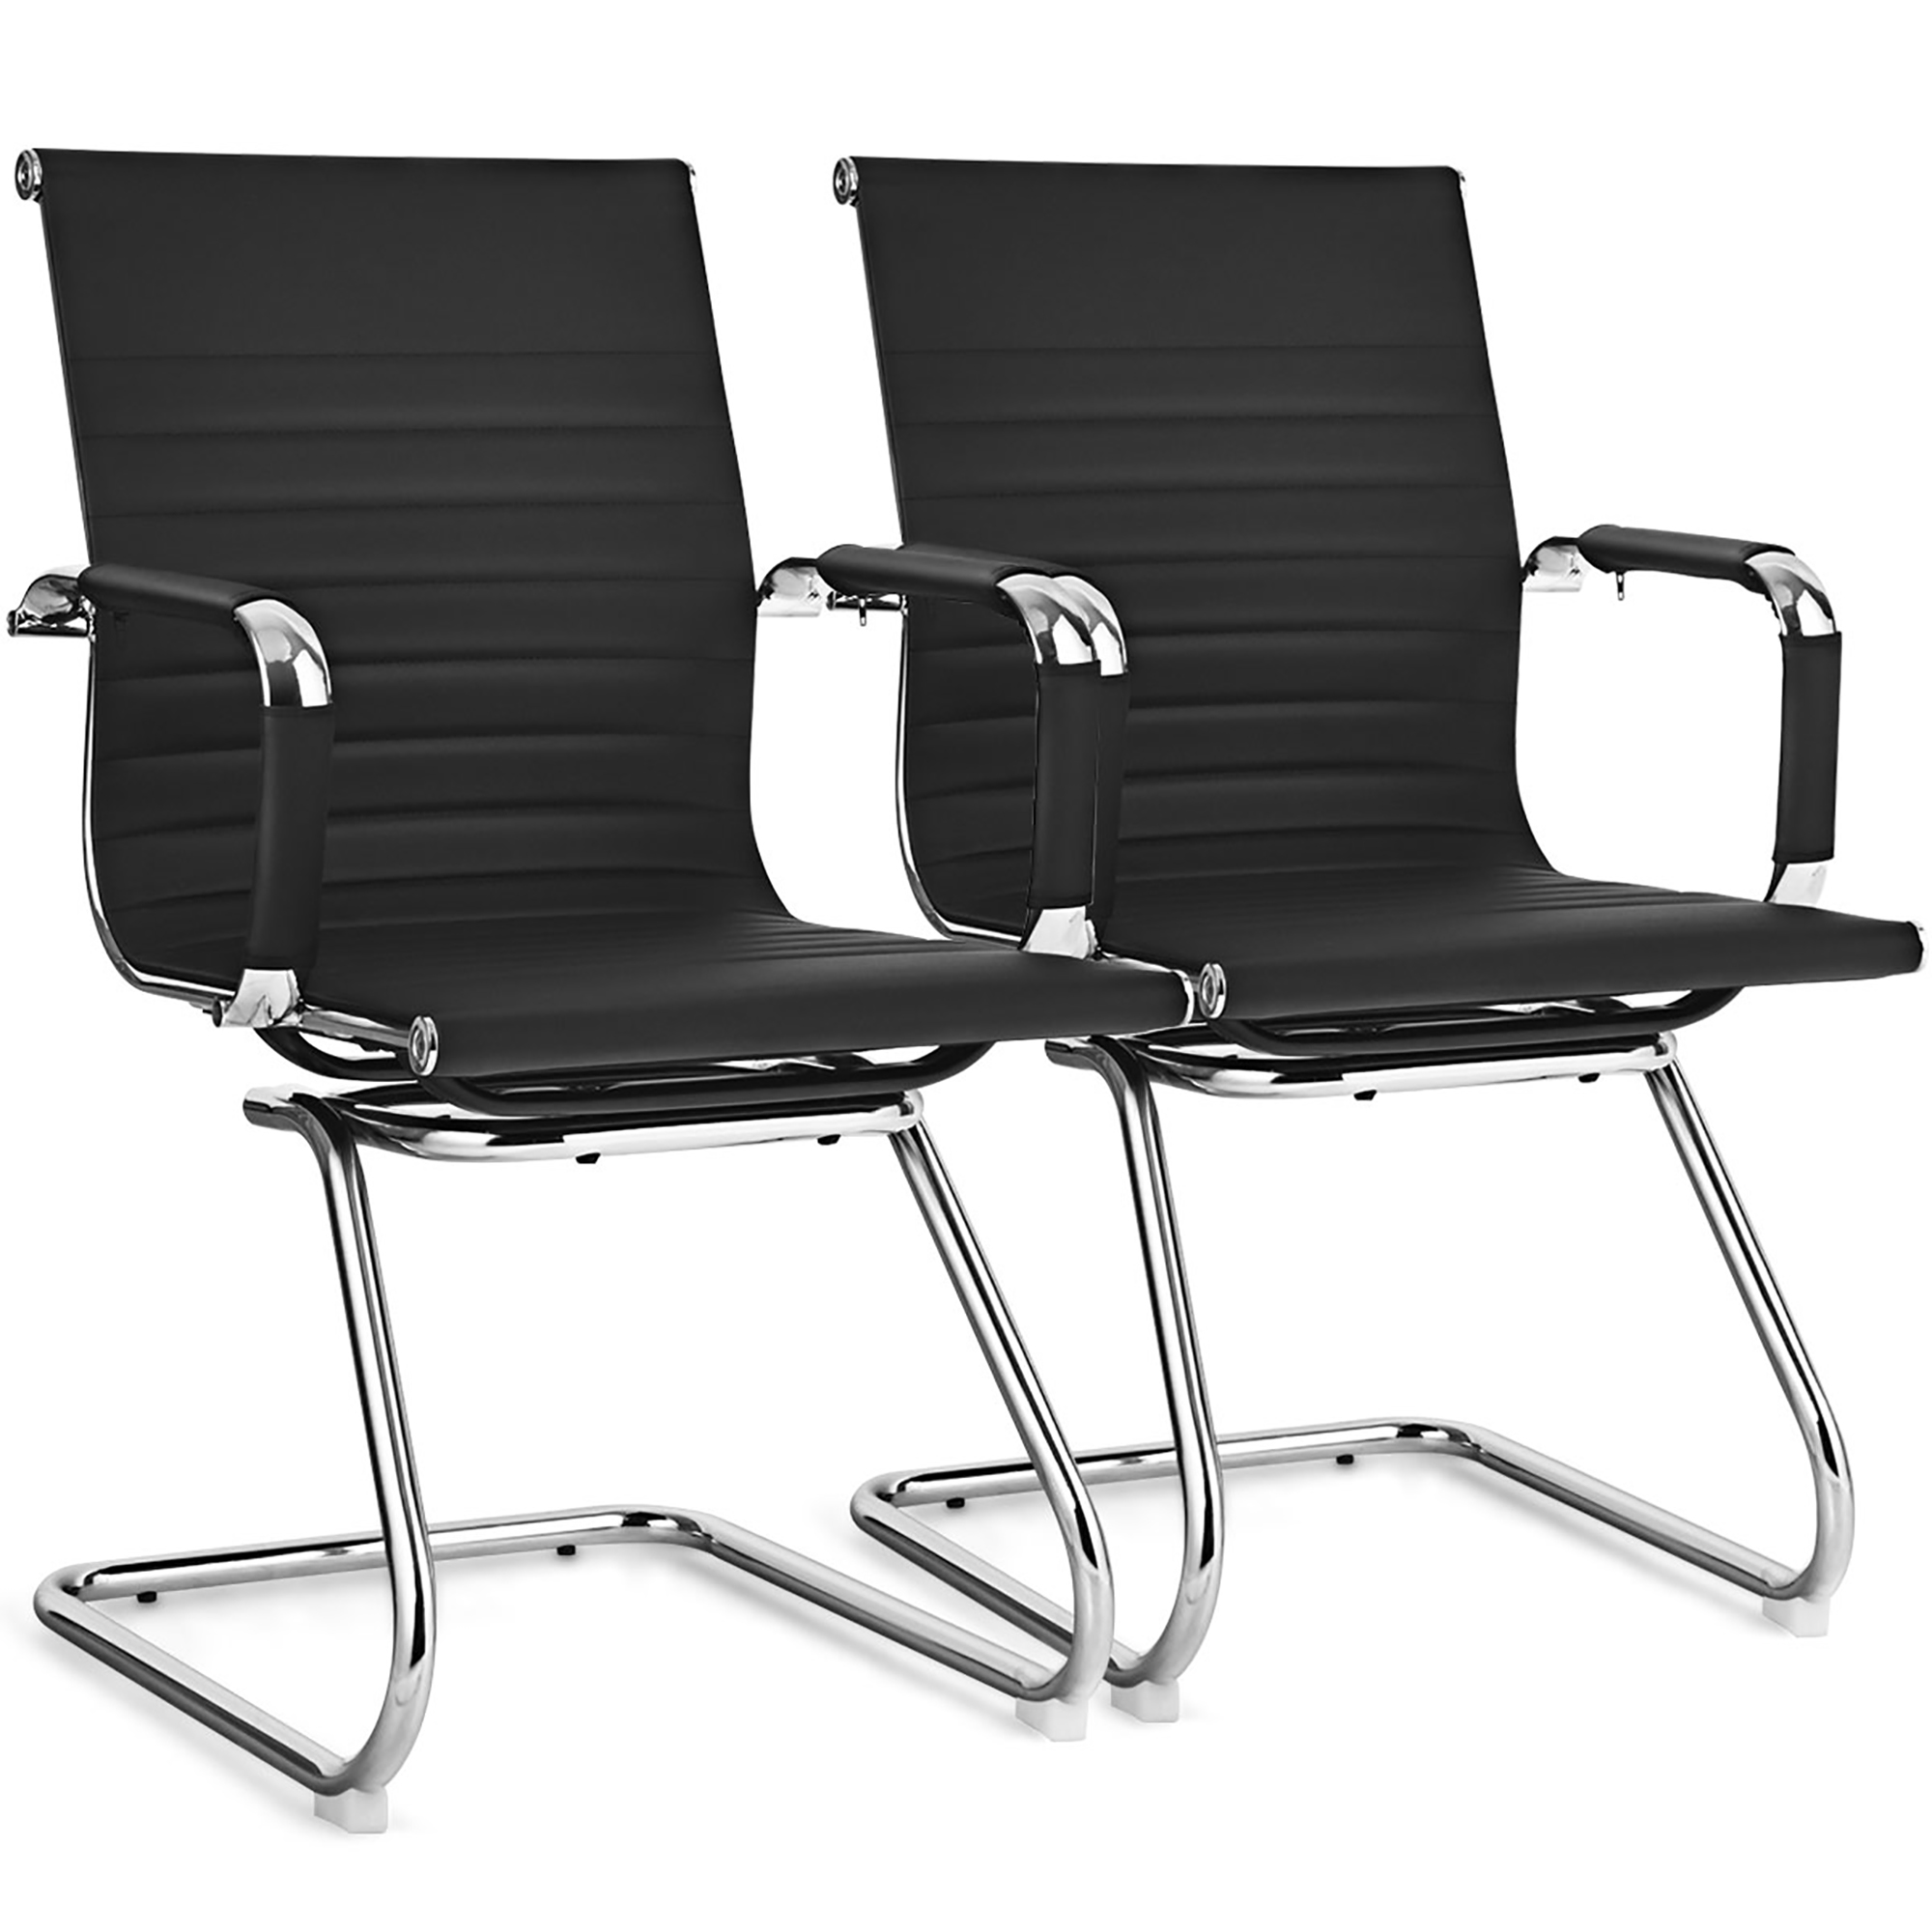 Picture of: Costway Set Of 2 Office Waiting Room Chairs For Reception Conference Area Walmart Canada